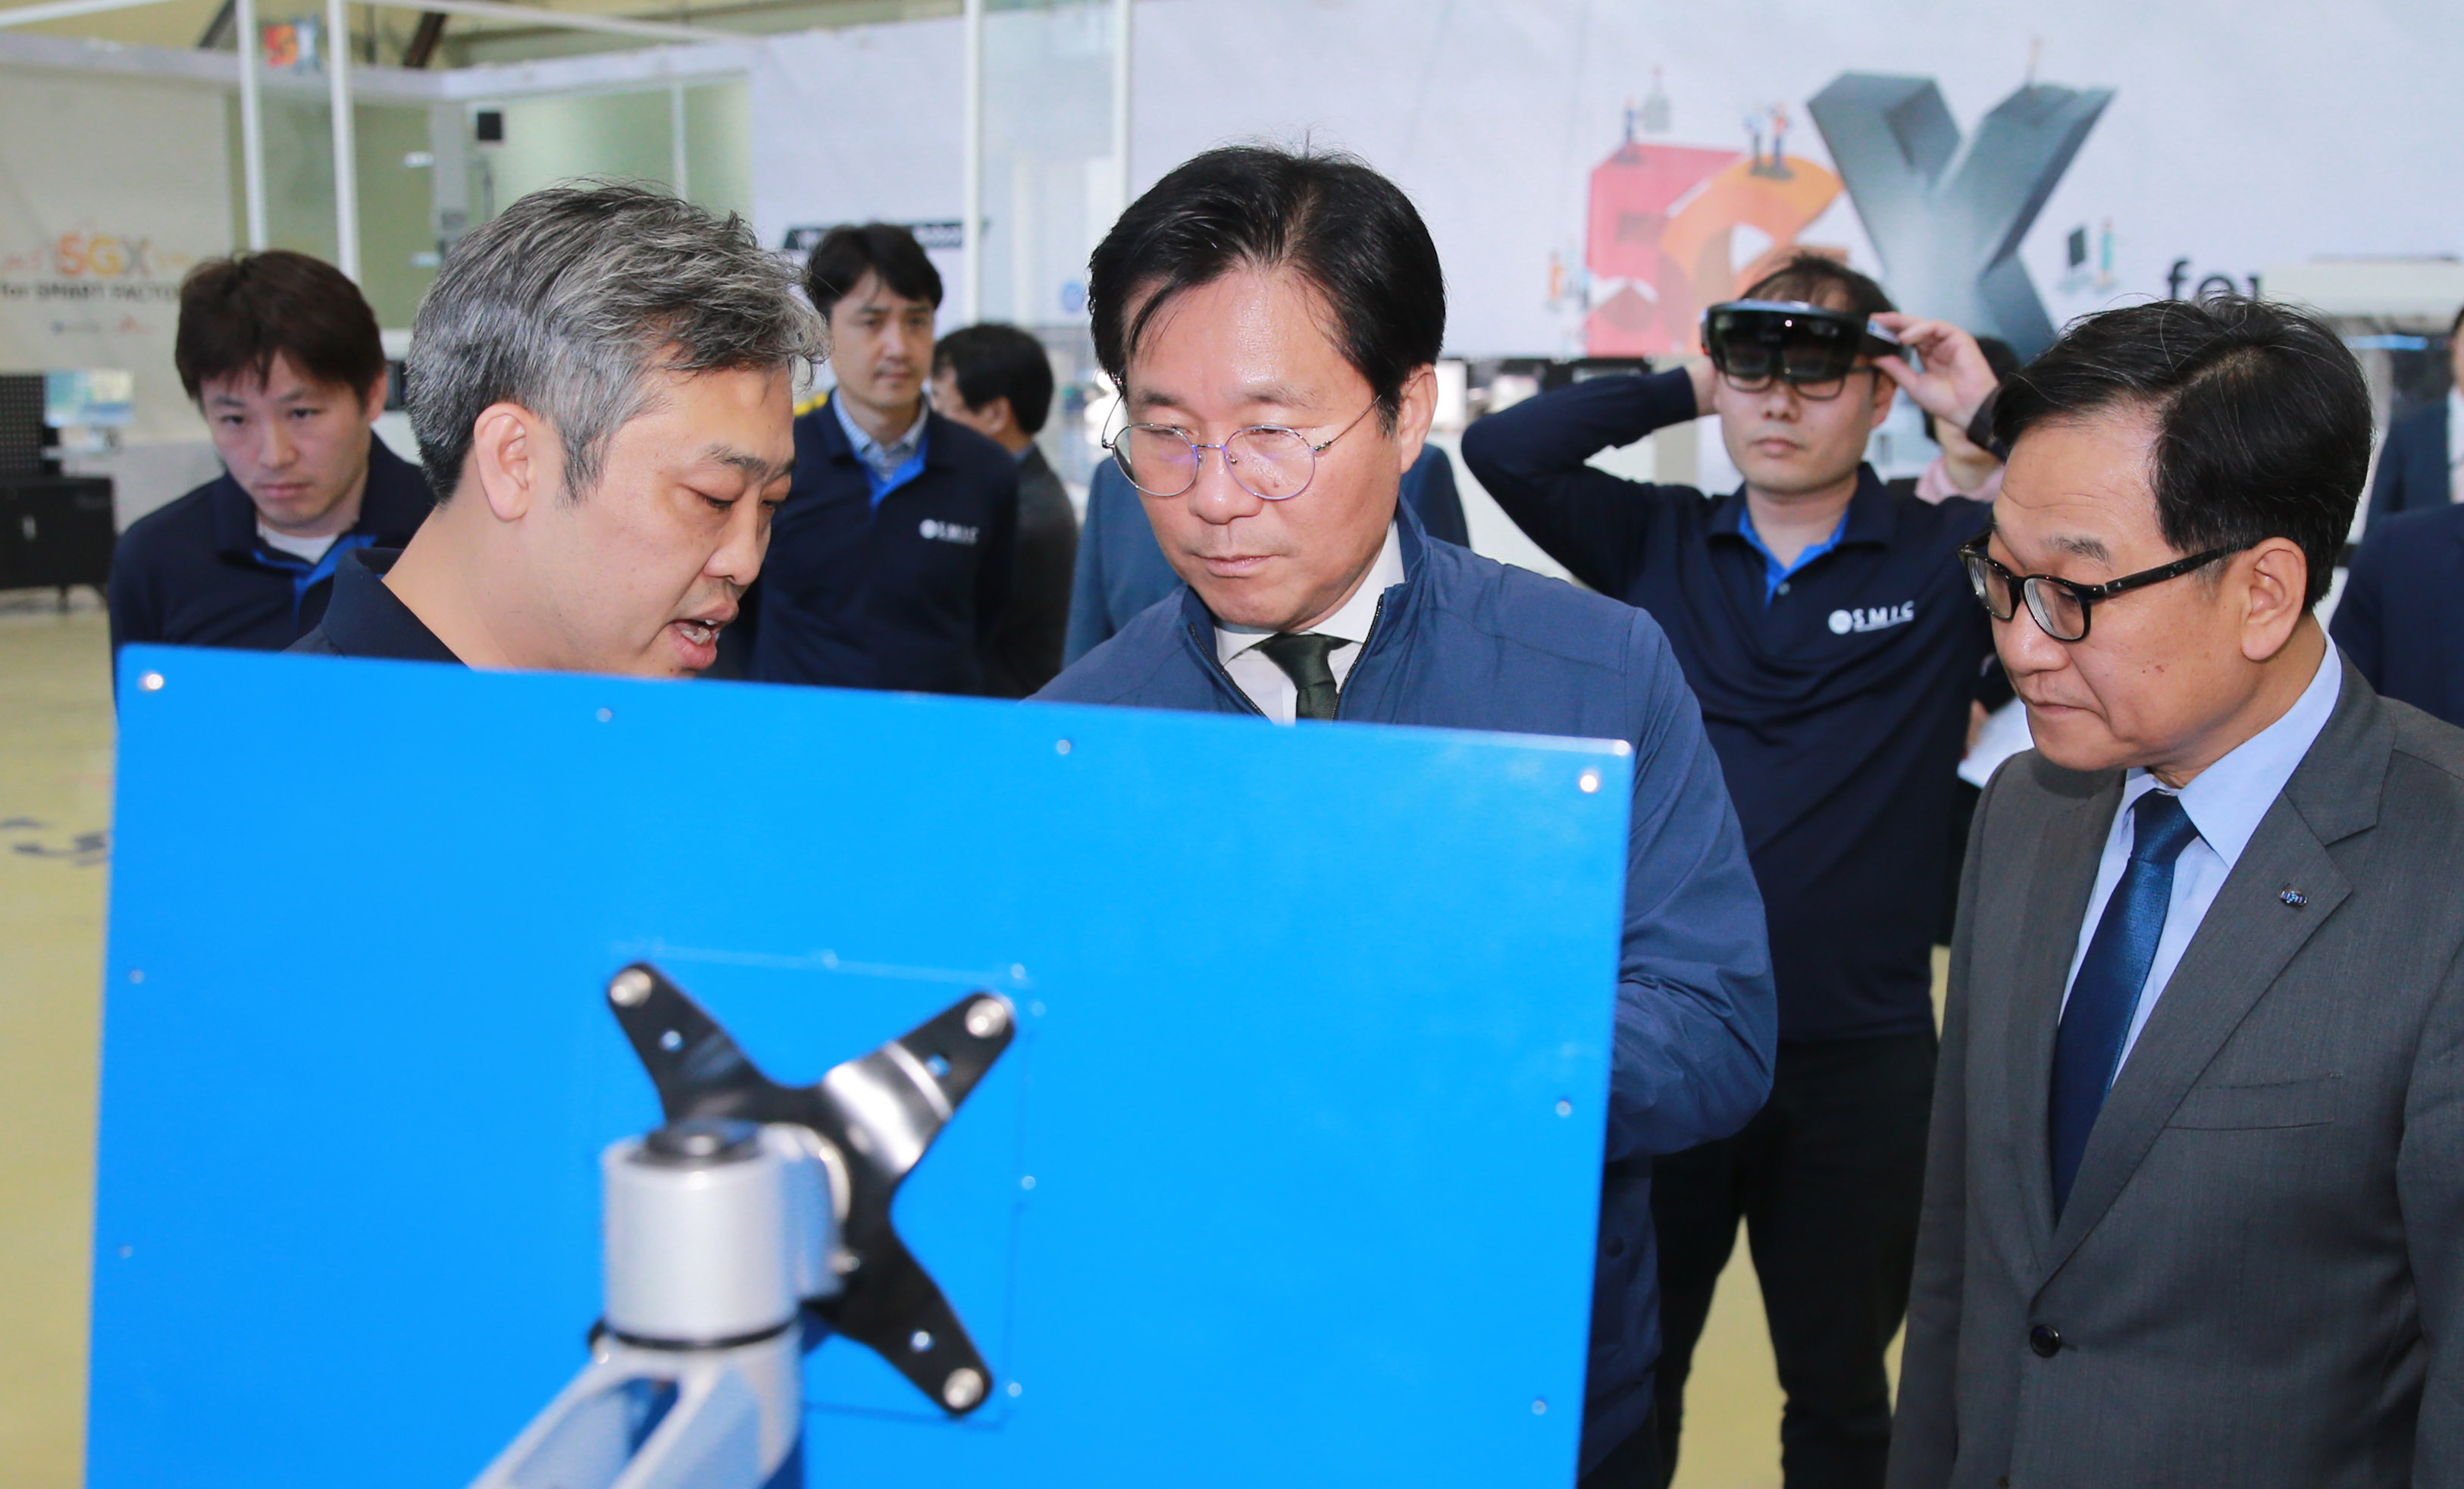 Minister Sung visits Smart Manufacturing Innovation Center in Ansan Image 0